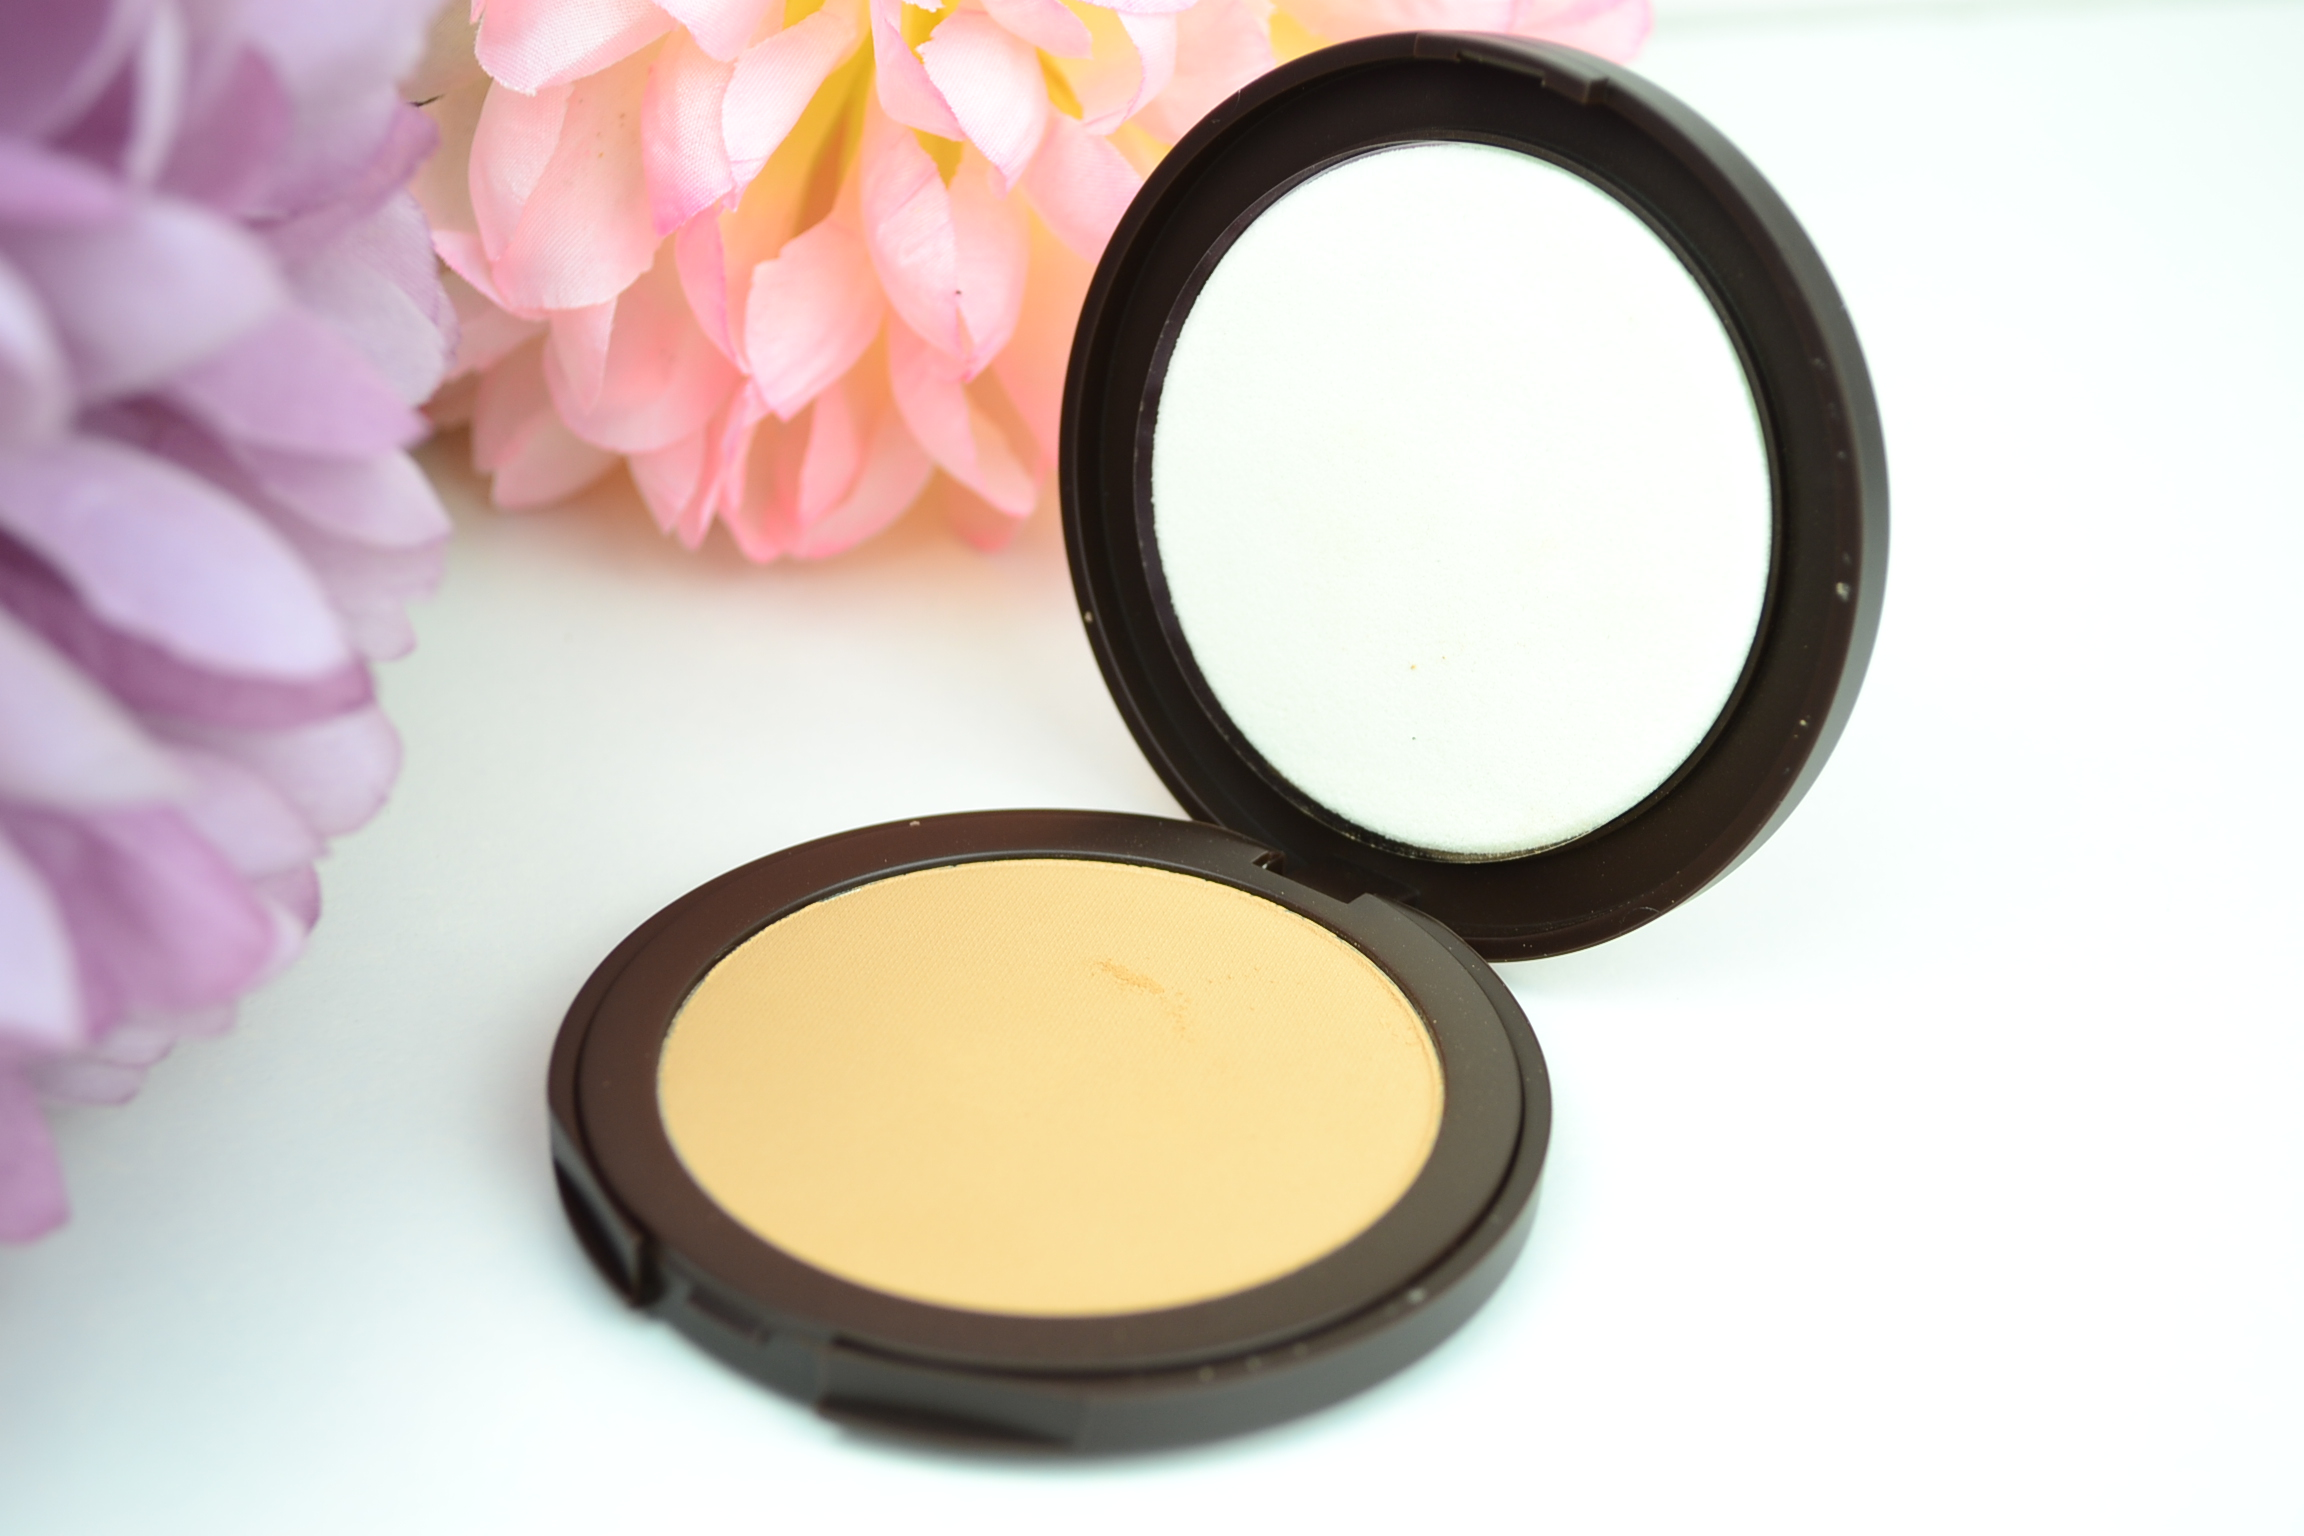 tarte-smoothe-operator-pressed-powder-review